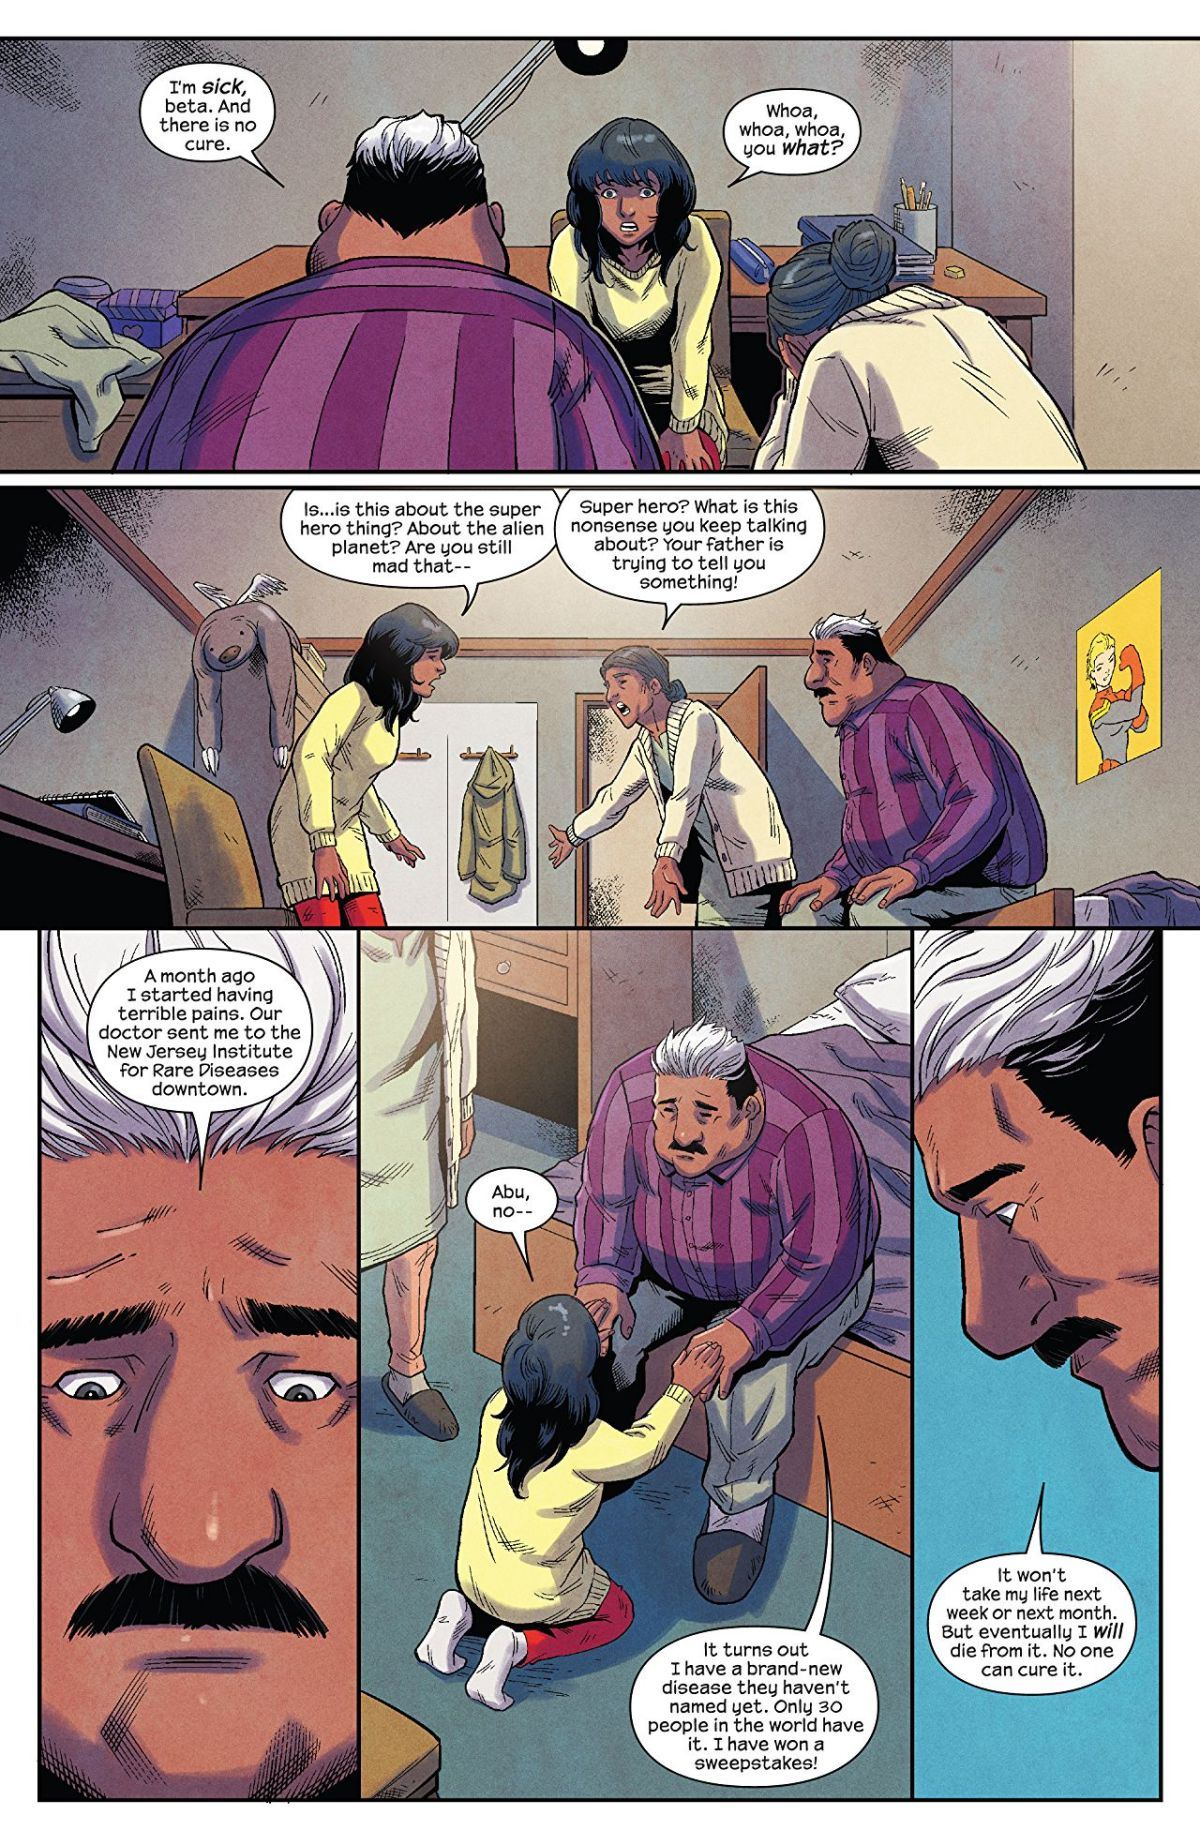 The Magnificent Ms Marvel #6: Page 2, Kamala learns about her father's illness.